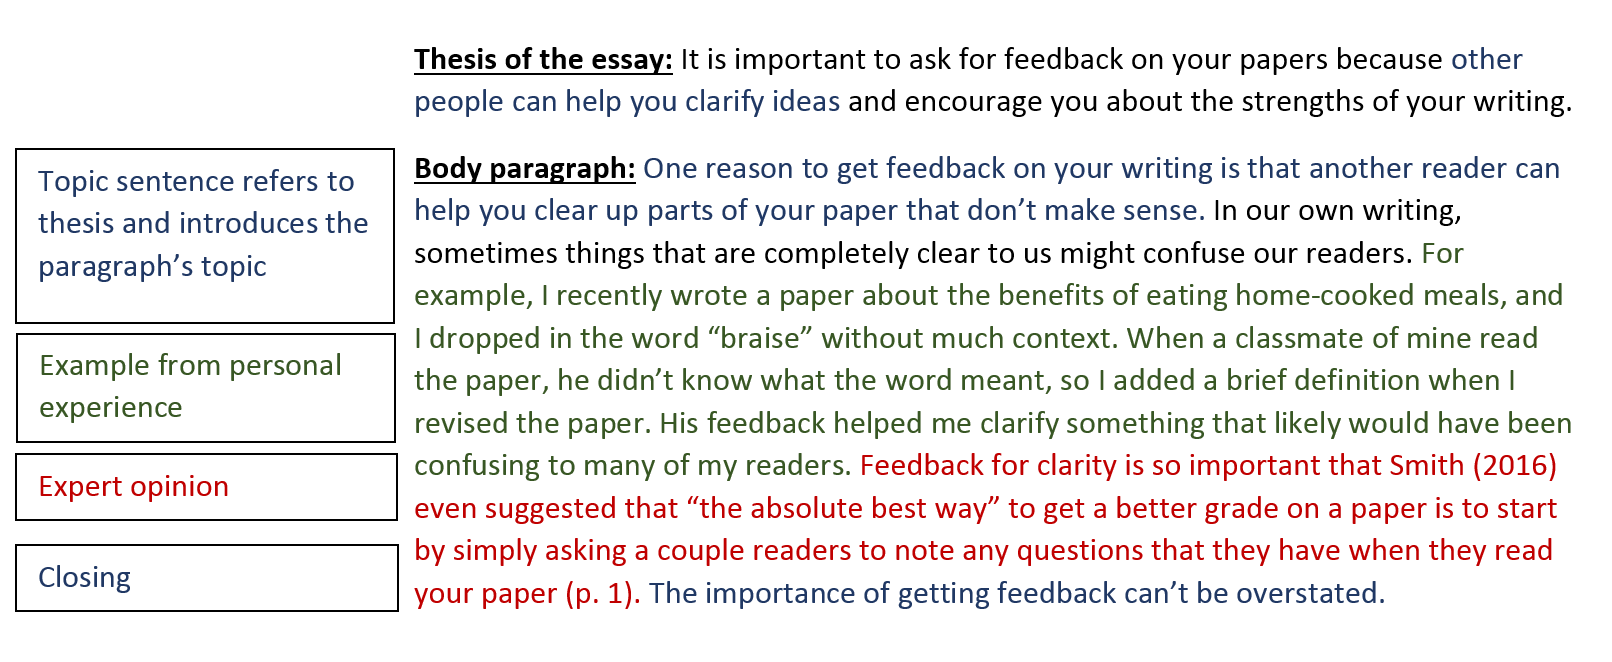 body paragraphs  writing your paper  research guides at eastern  writing your paper